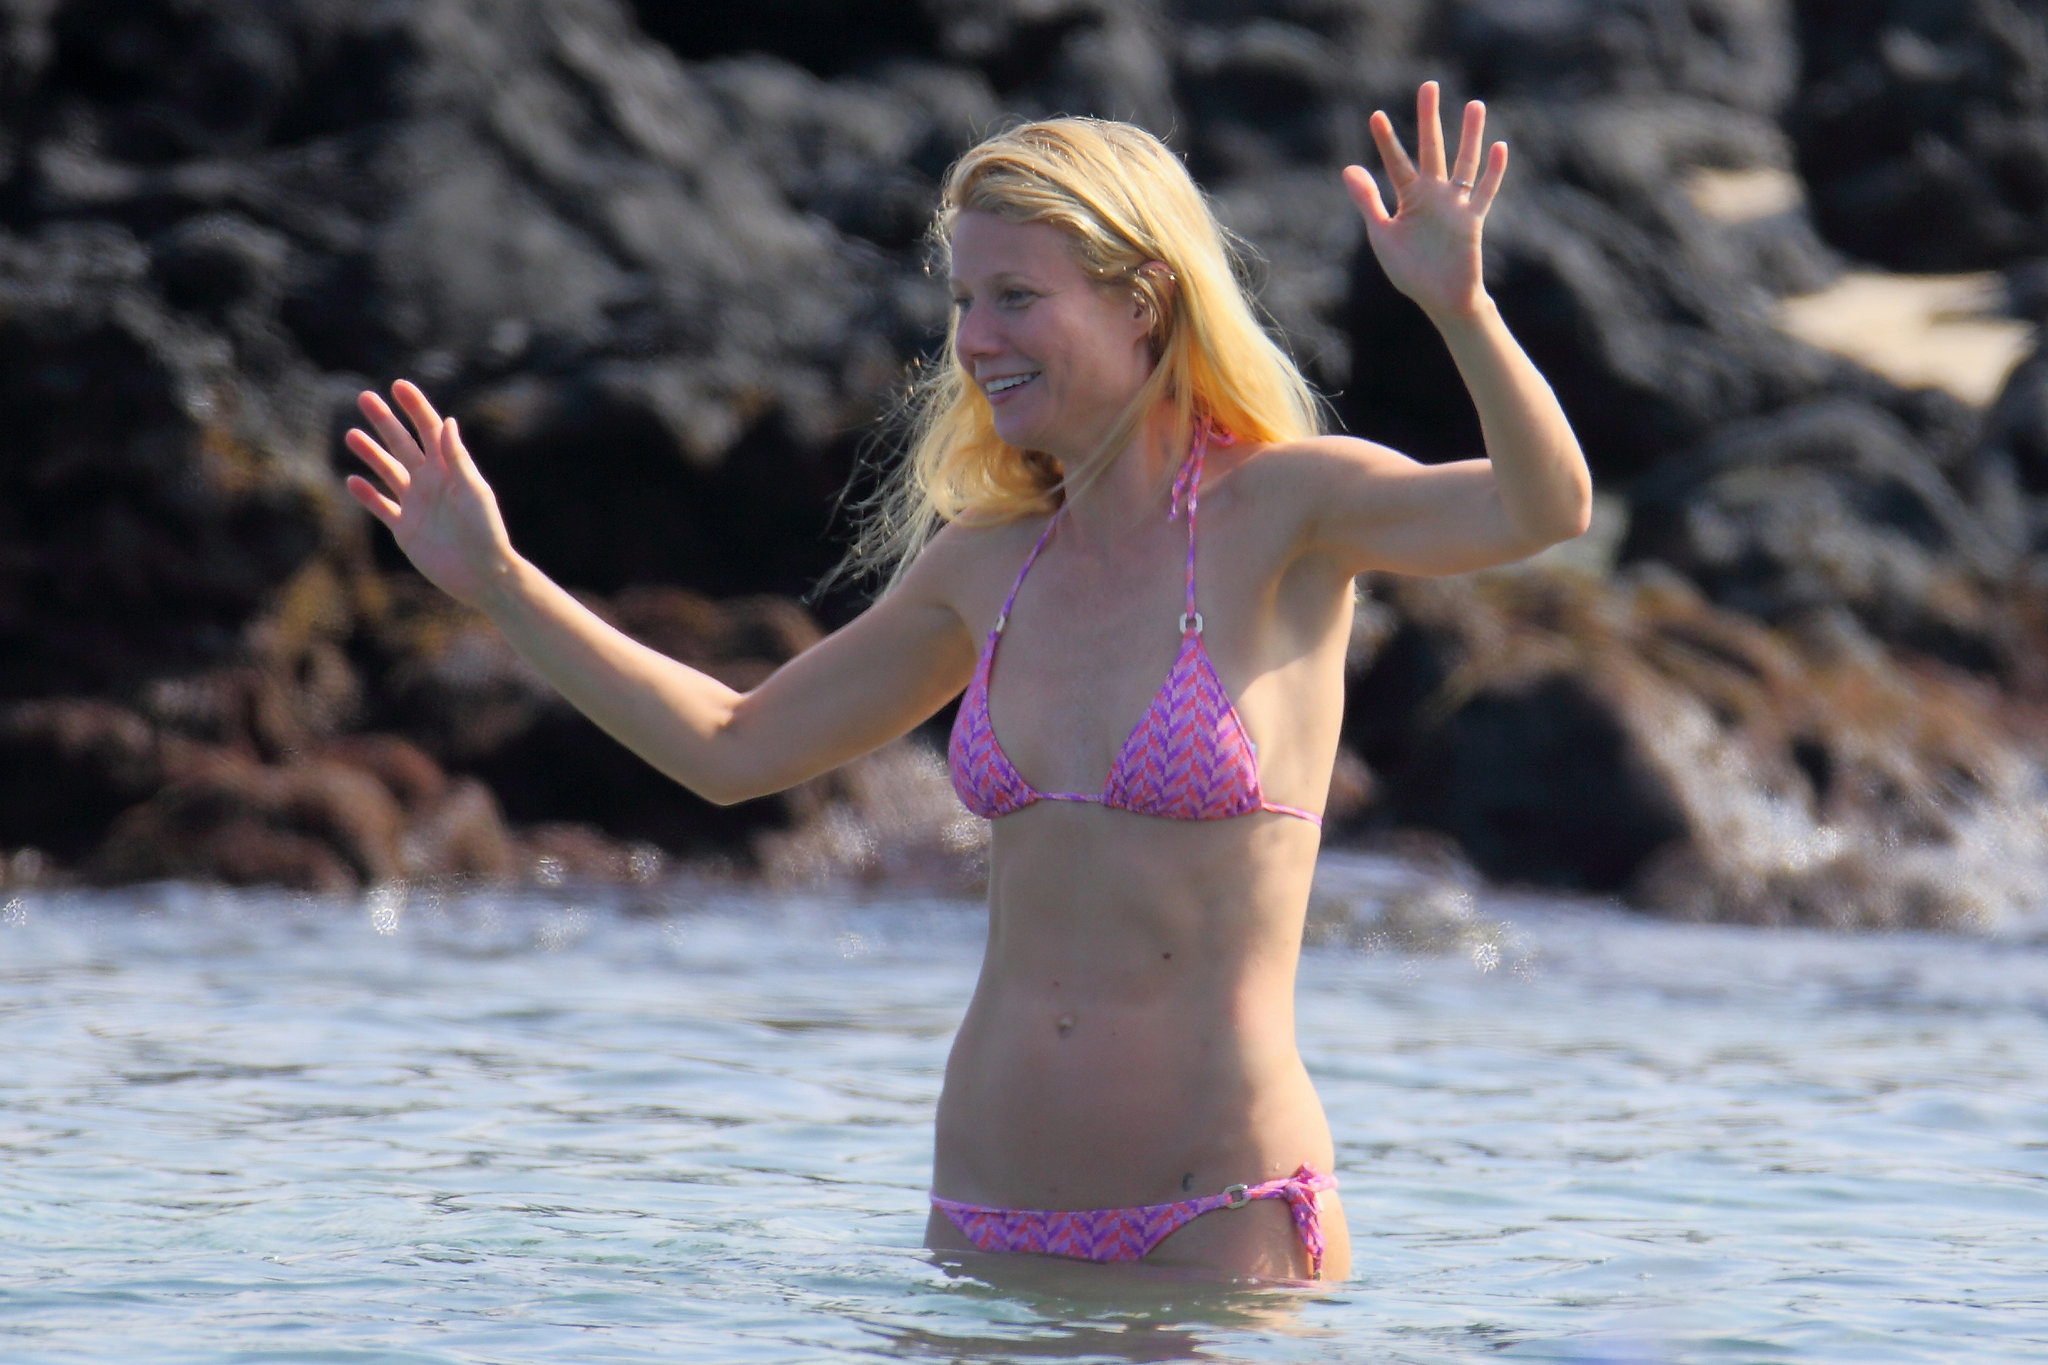 In January 2014, Gwyneth Paltrow wore a bikini in Hawaii.